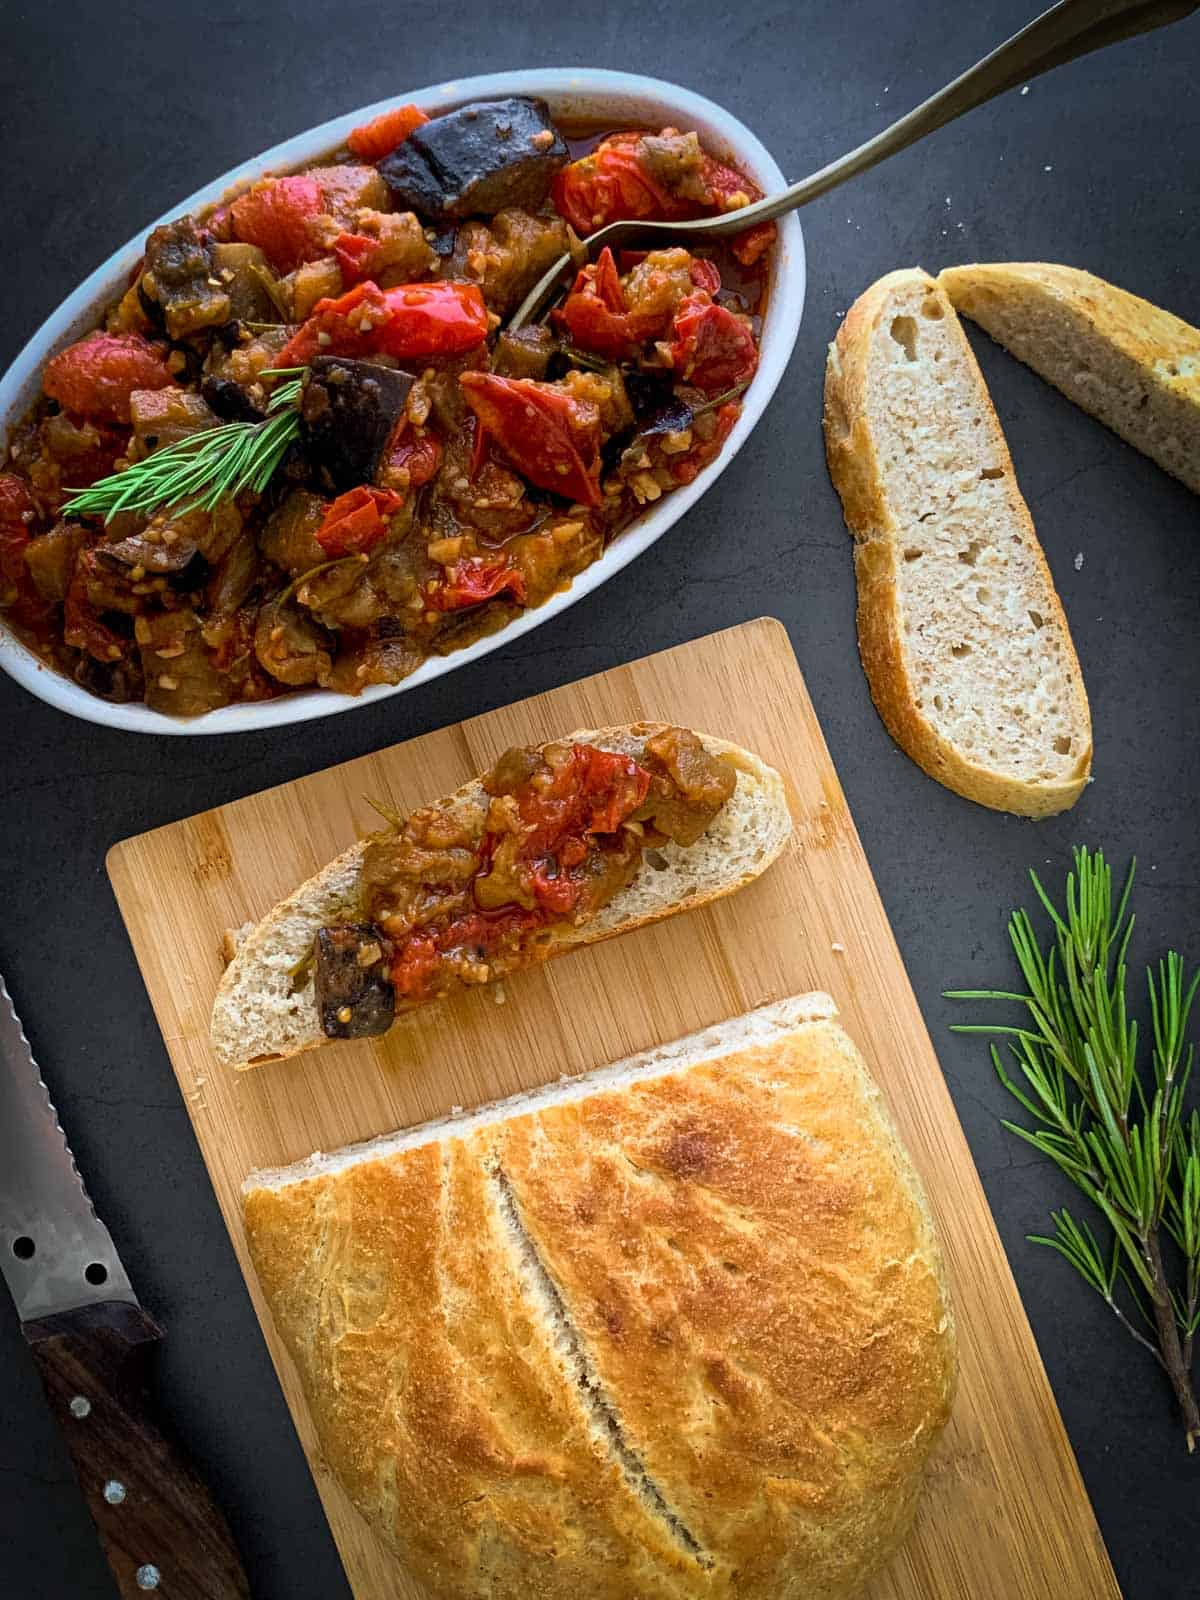 Italian Eggplant served with bread